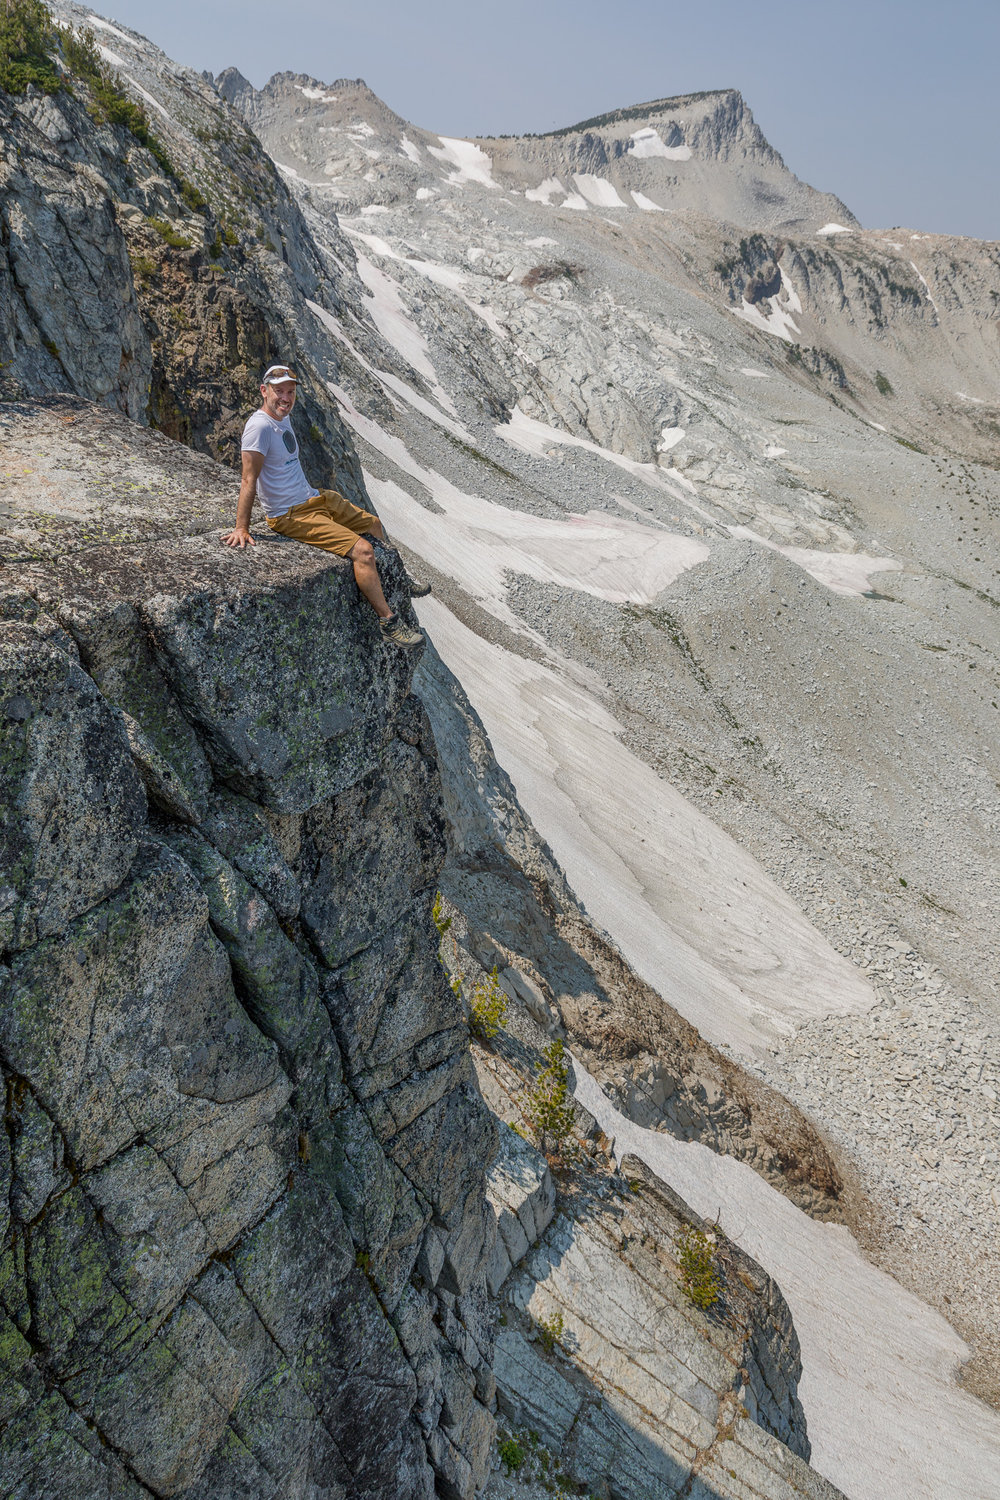 This was a shot from our scramble up to the top of Eagle Cap from Glacier Lake